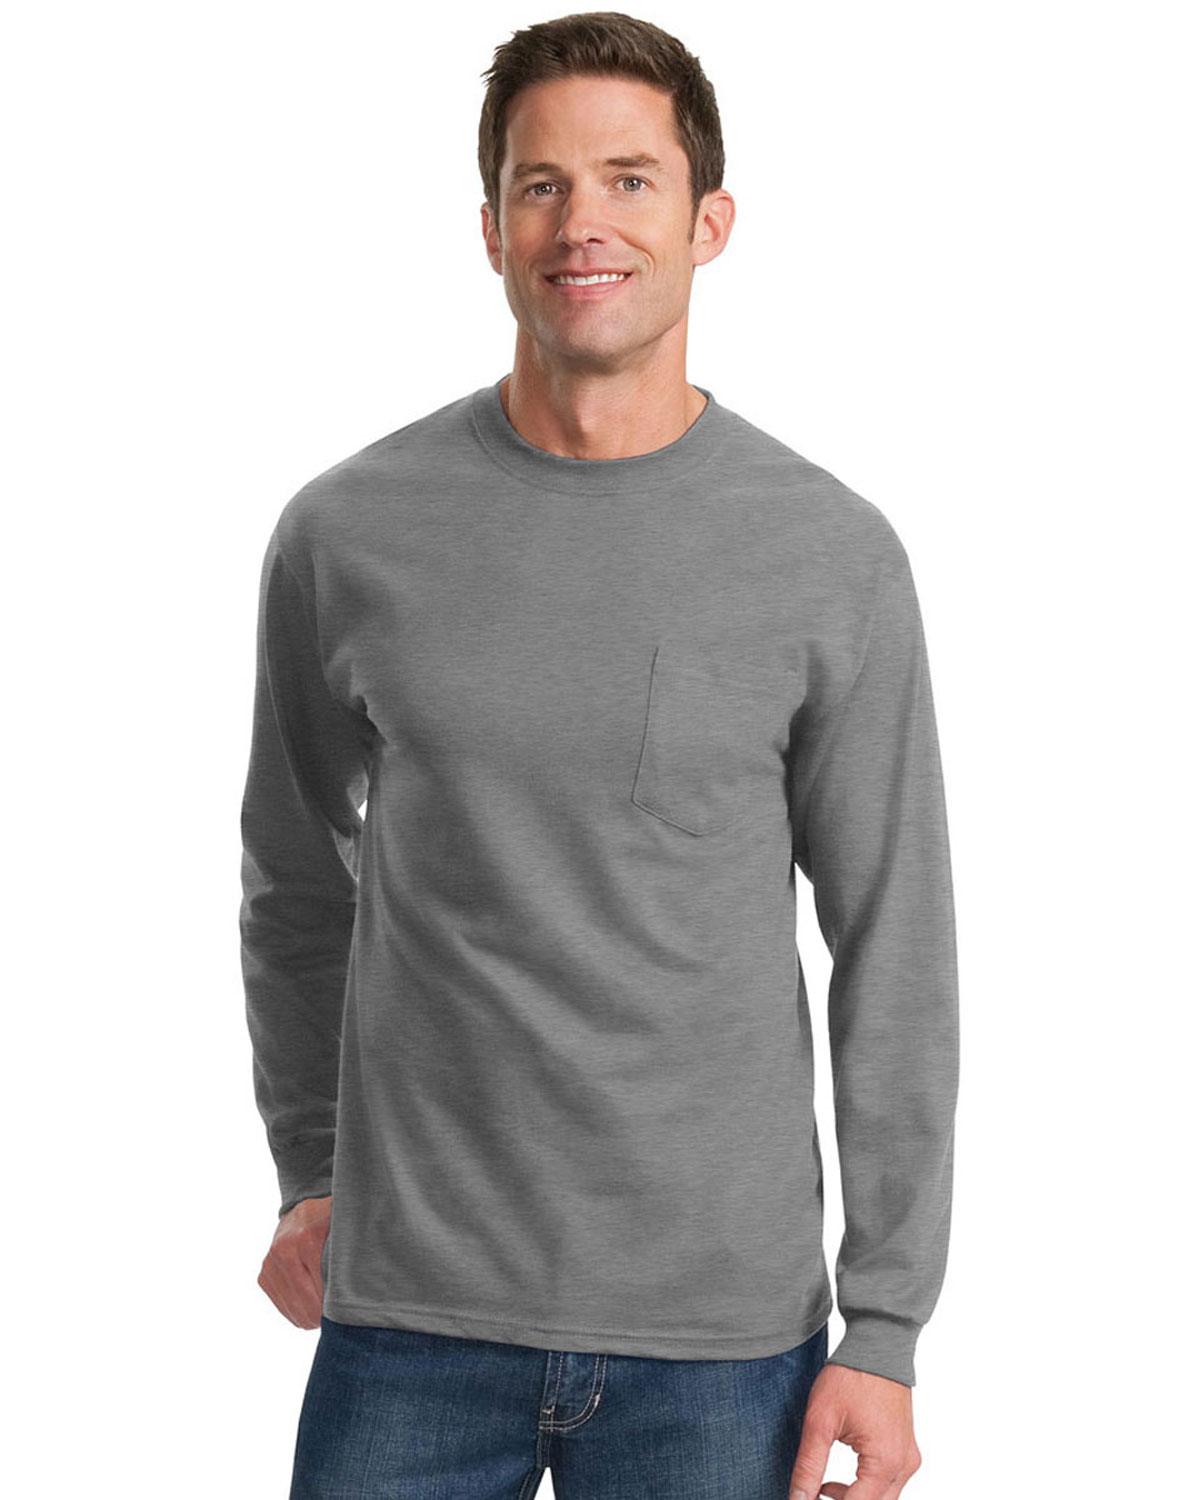 Port Company Tall Long Sleeve Essential T Shirt With